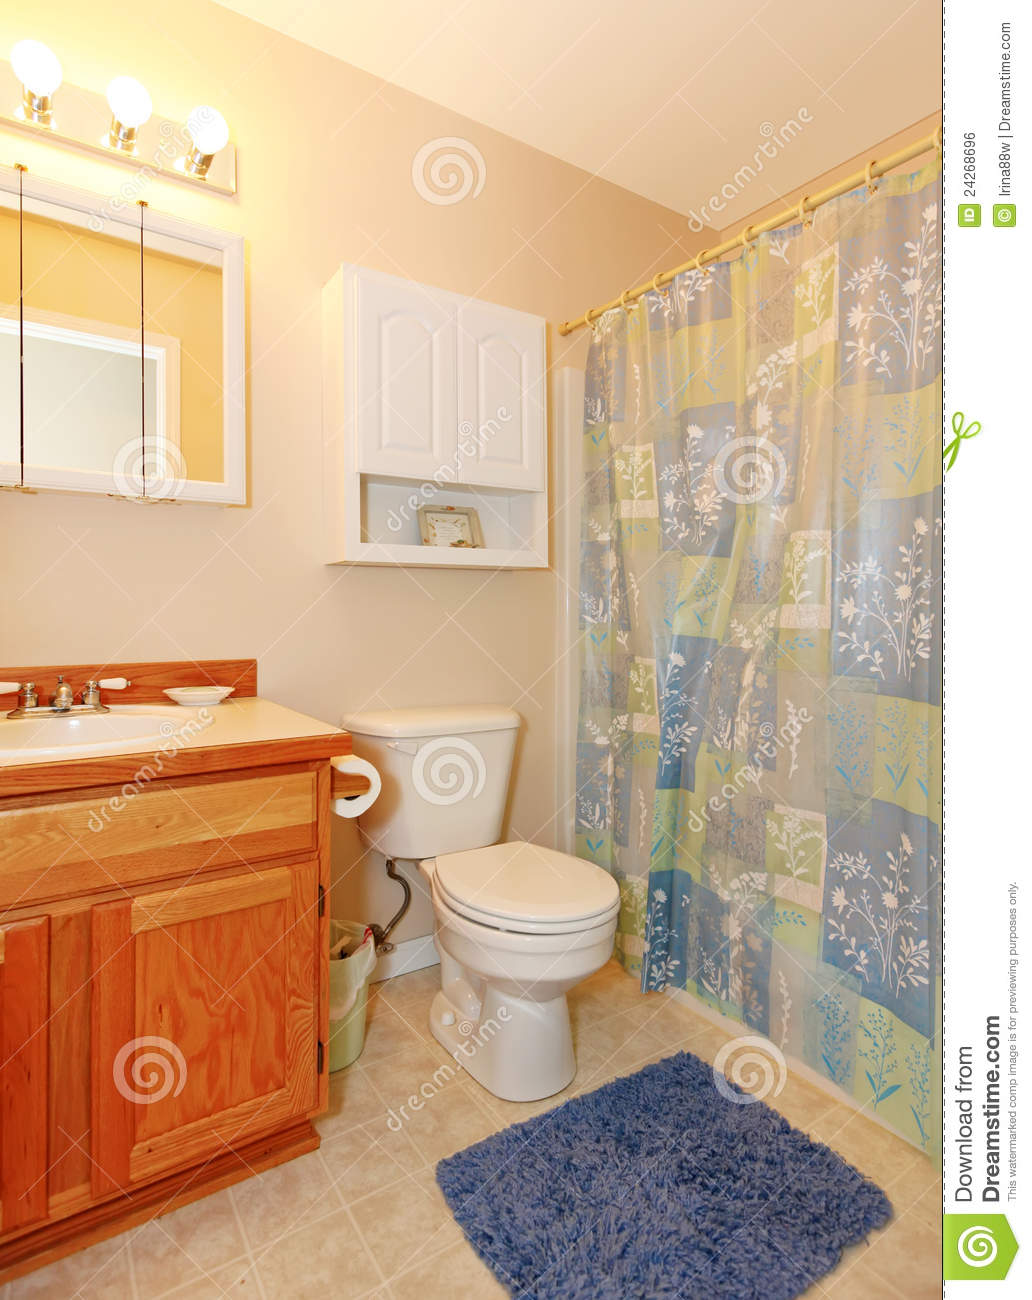 Simple Small Bathroom With Purple Rug Royalty Free Stock